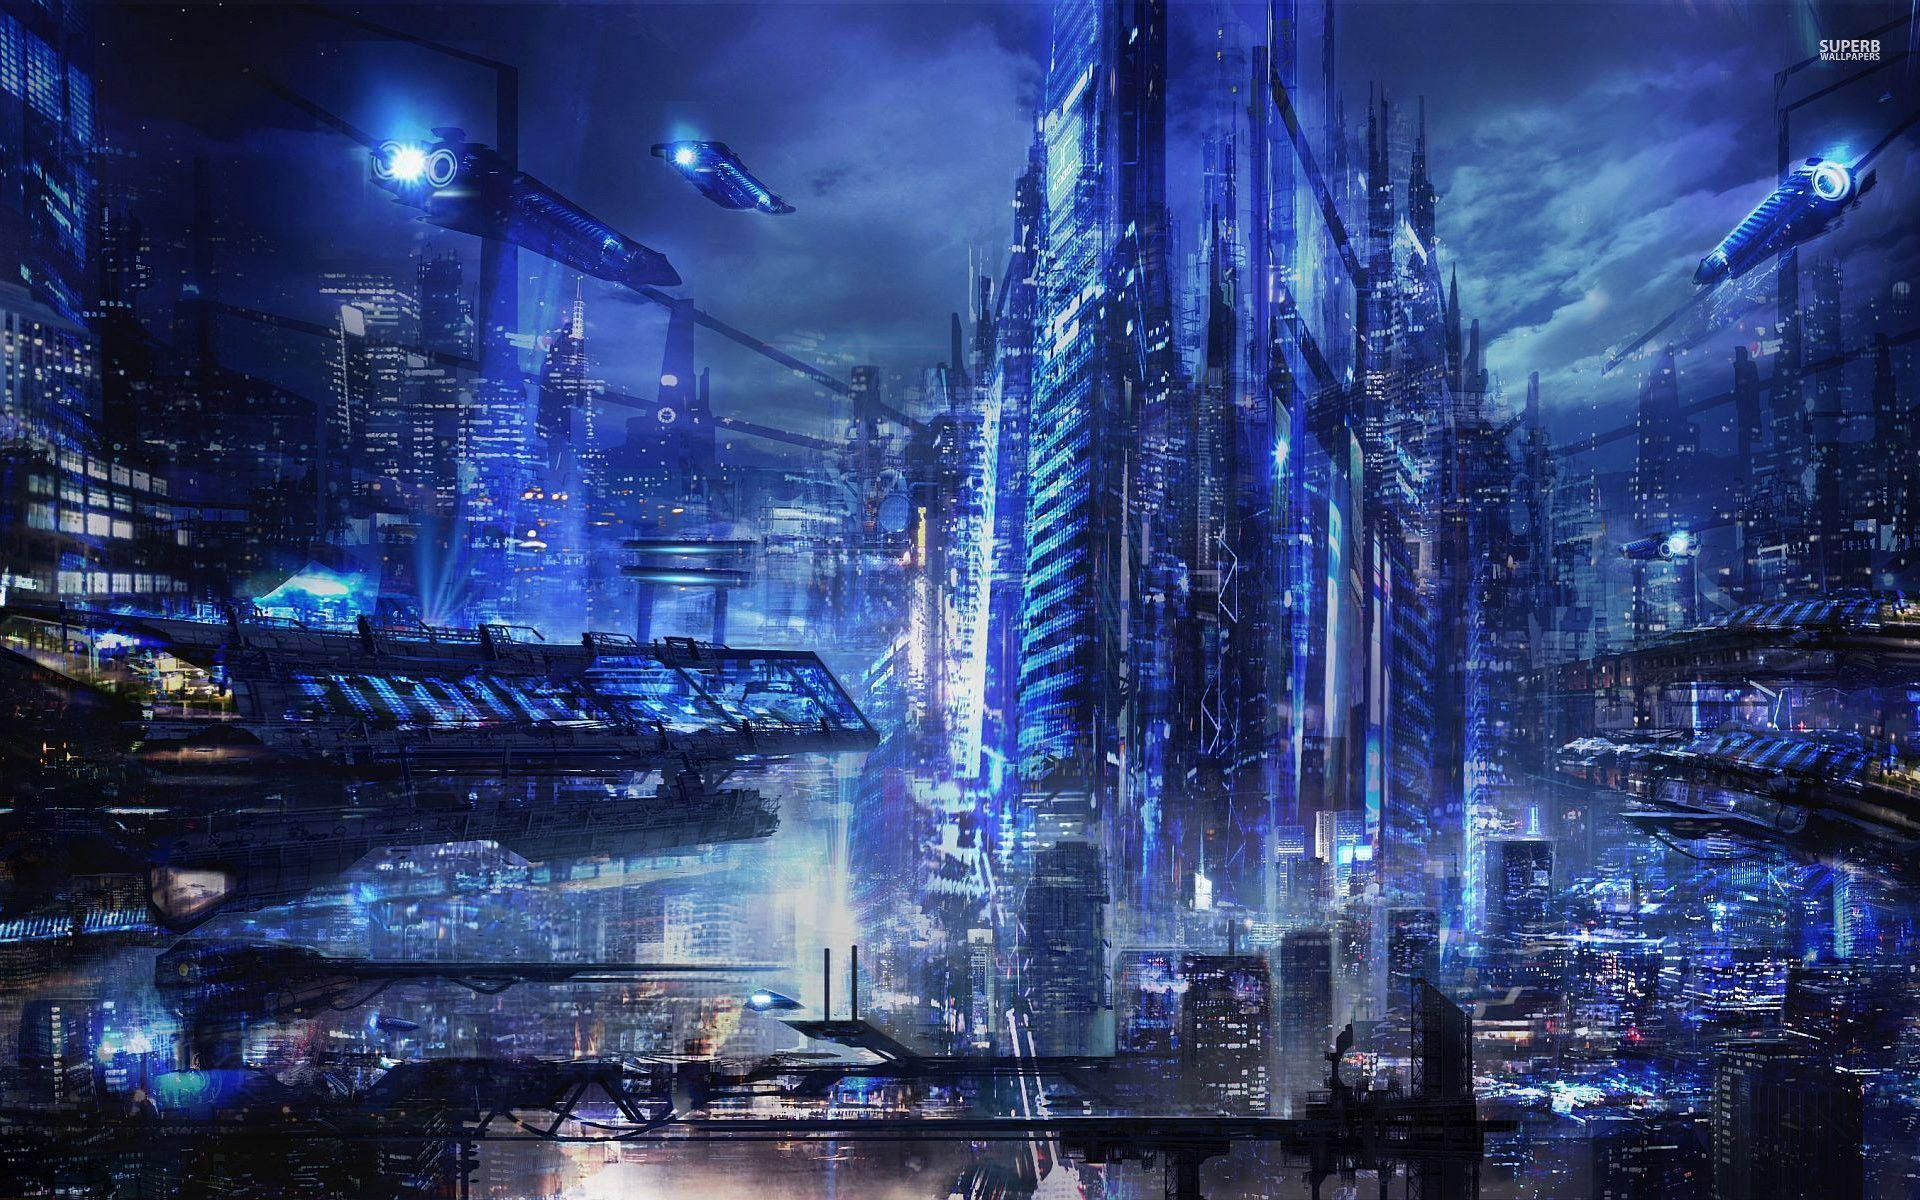 cyberpunk metropolis wallpaper - photo #27